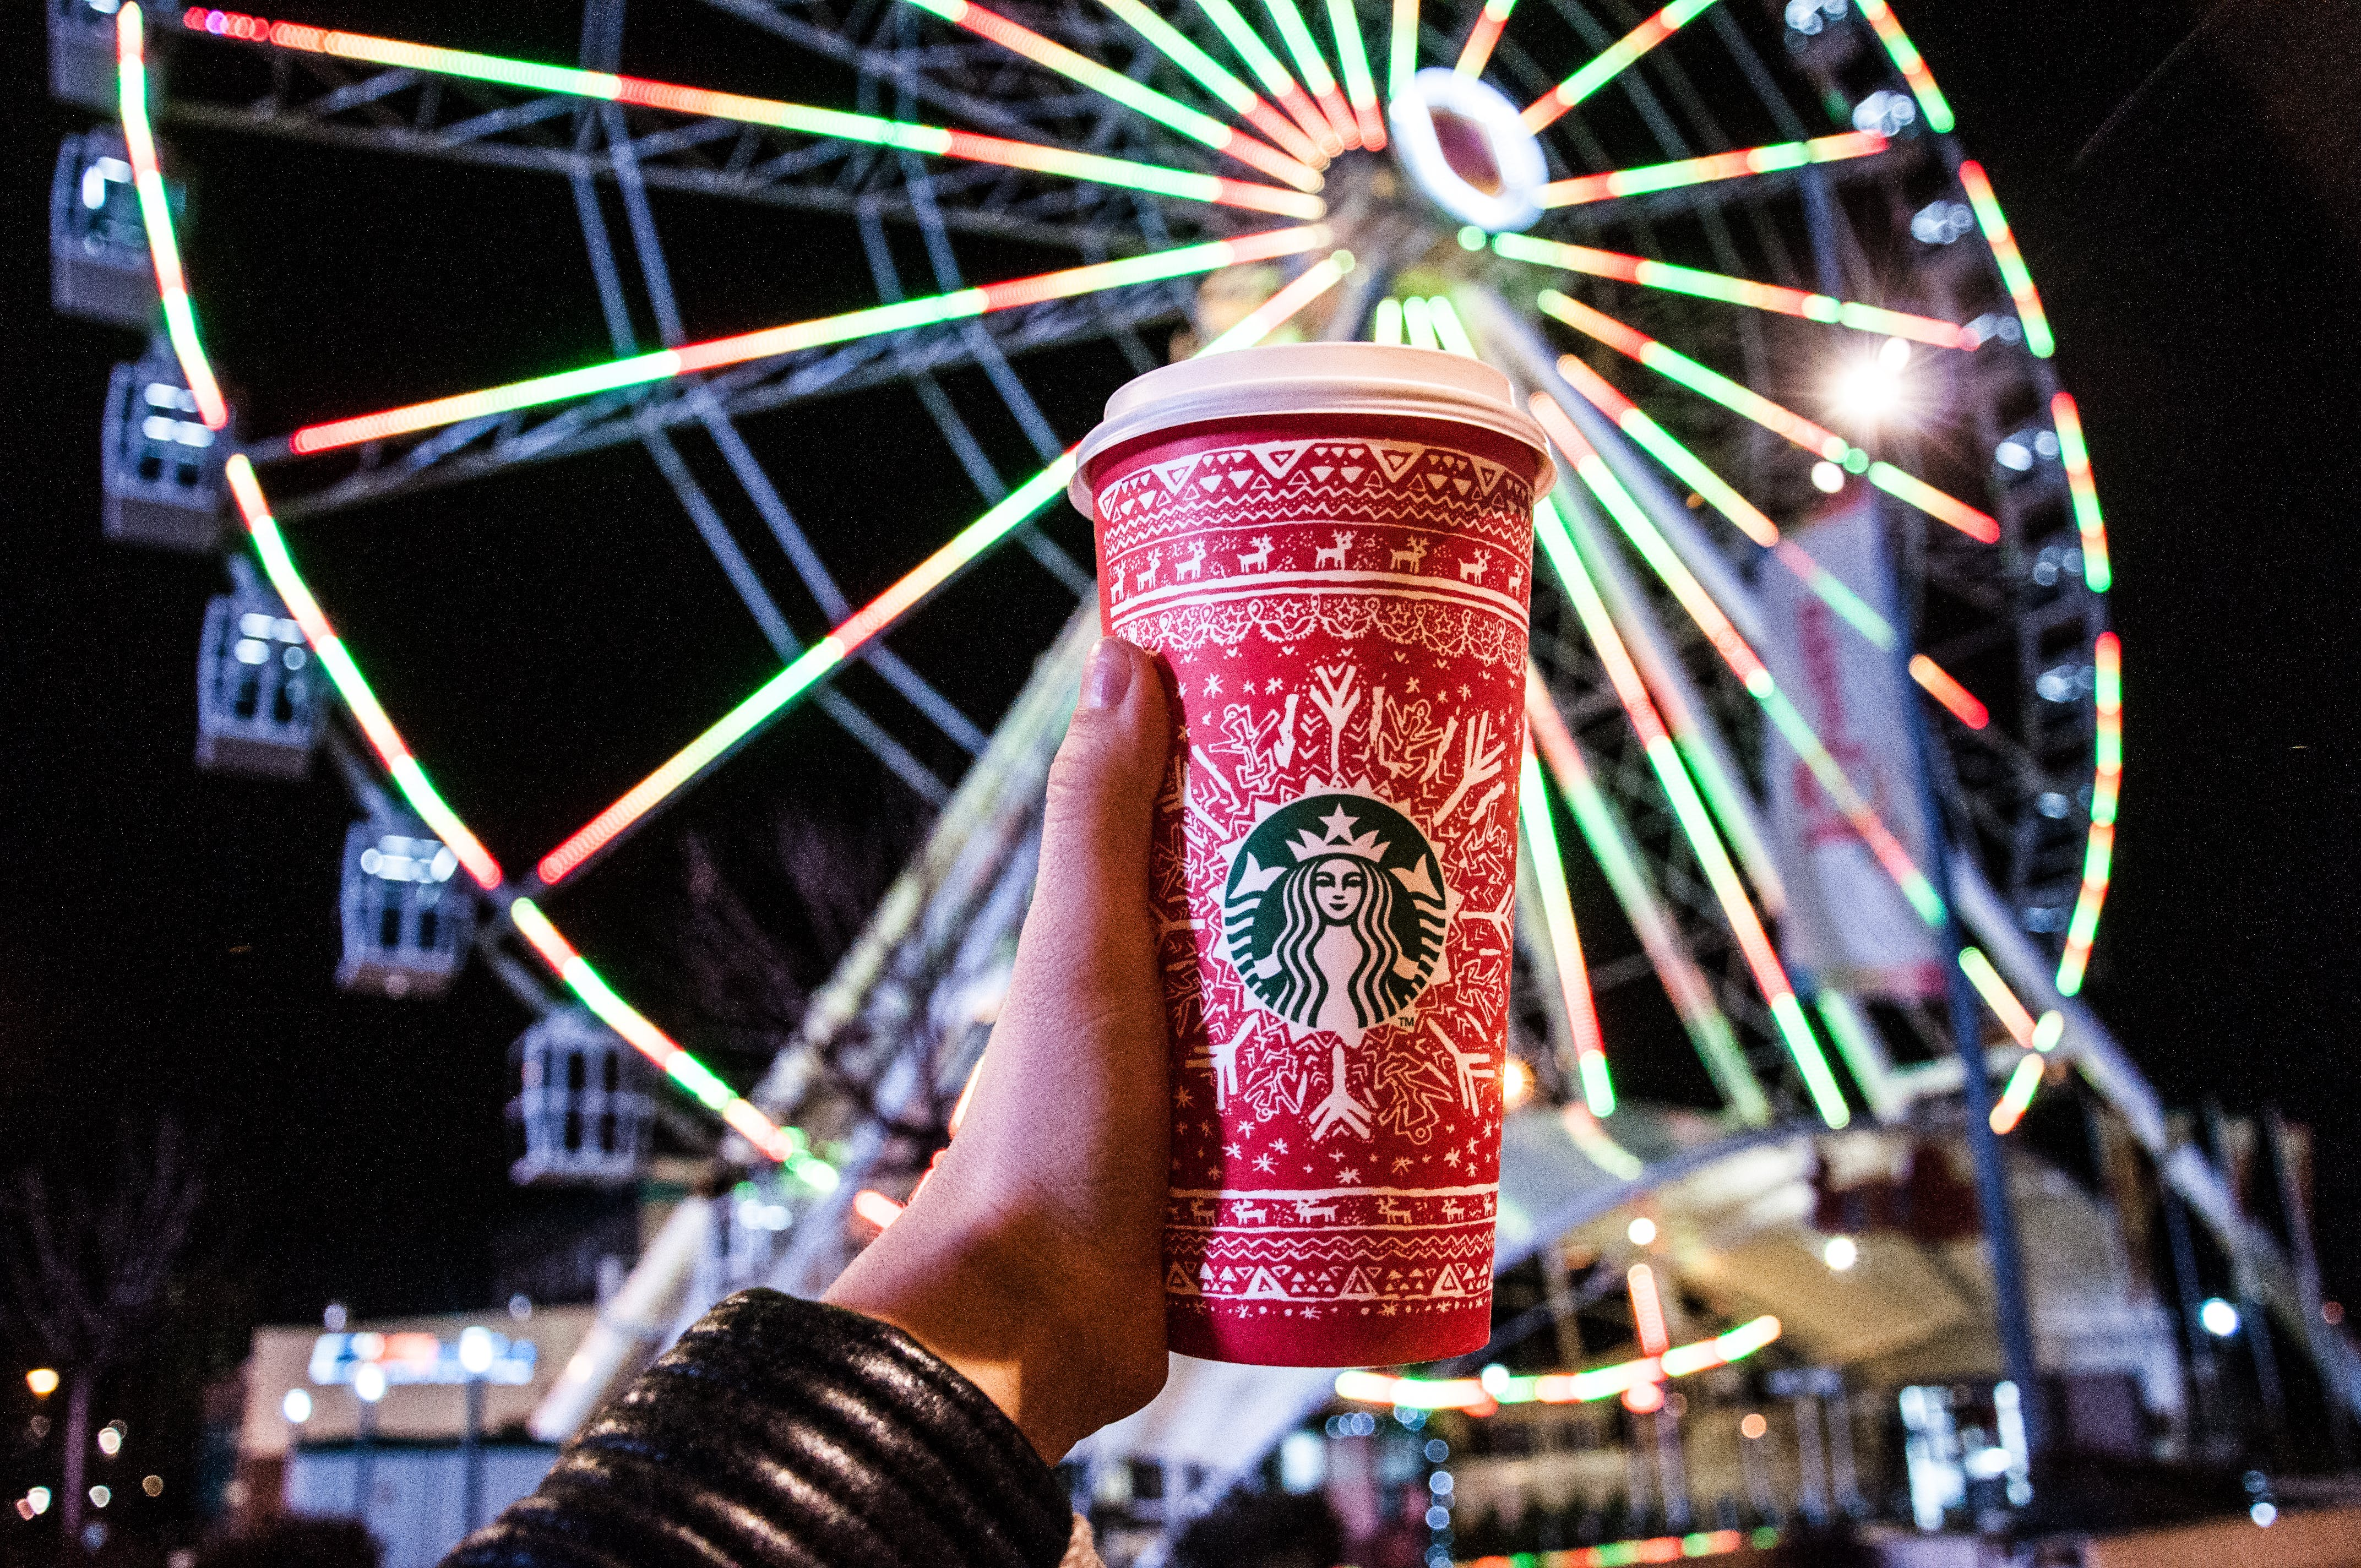 Red and White Starbucks Disposable Cup